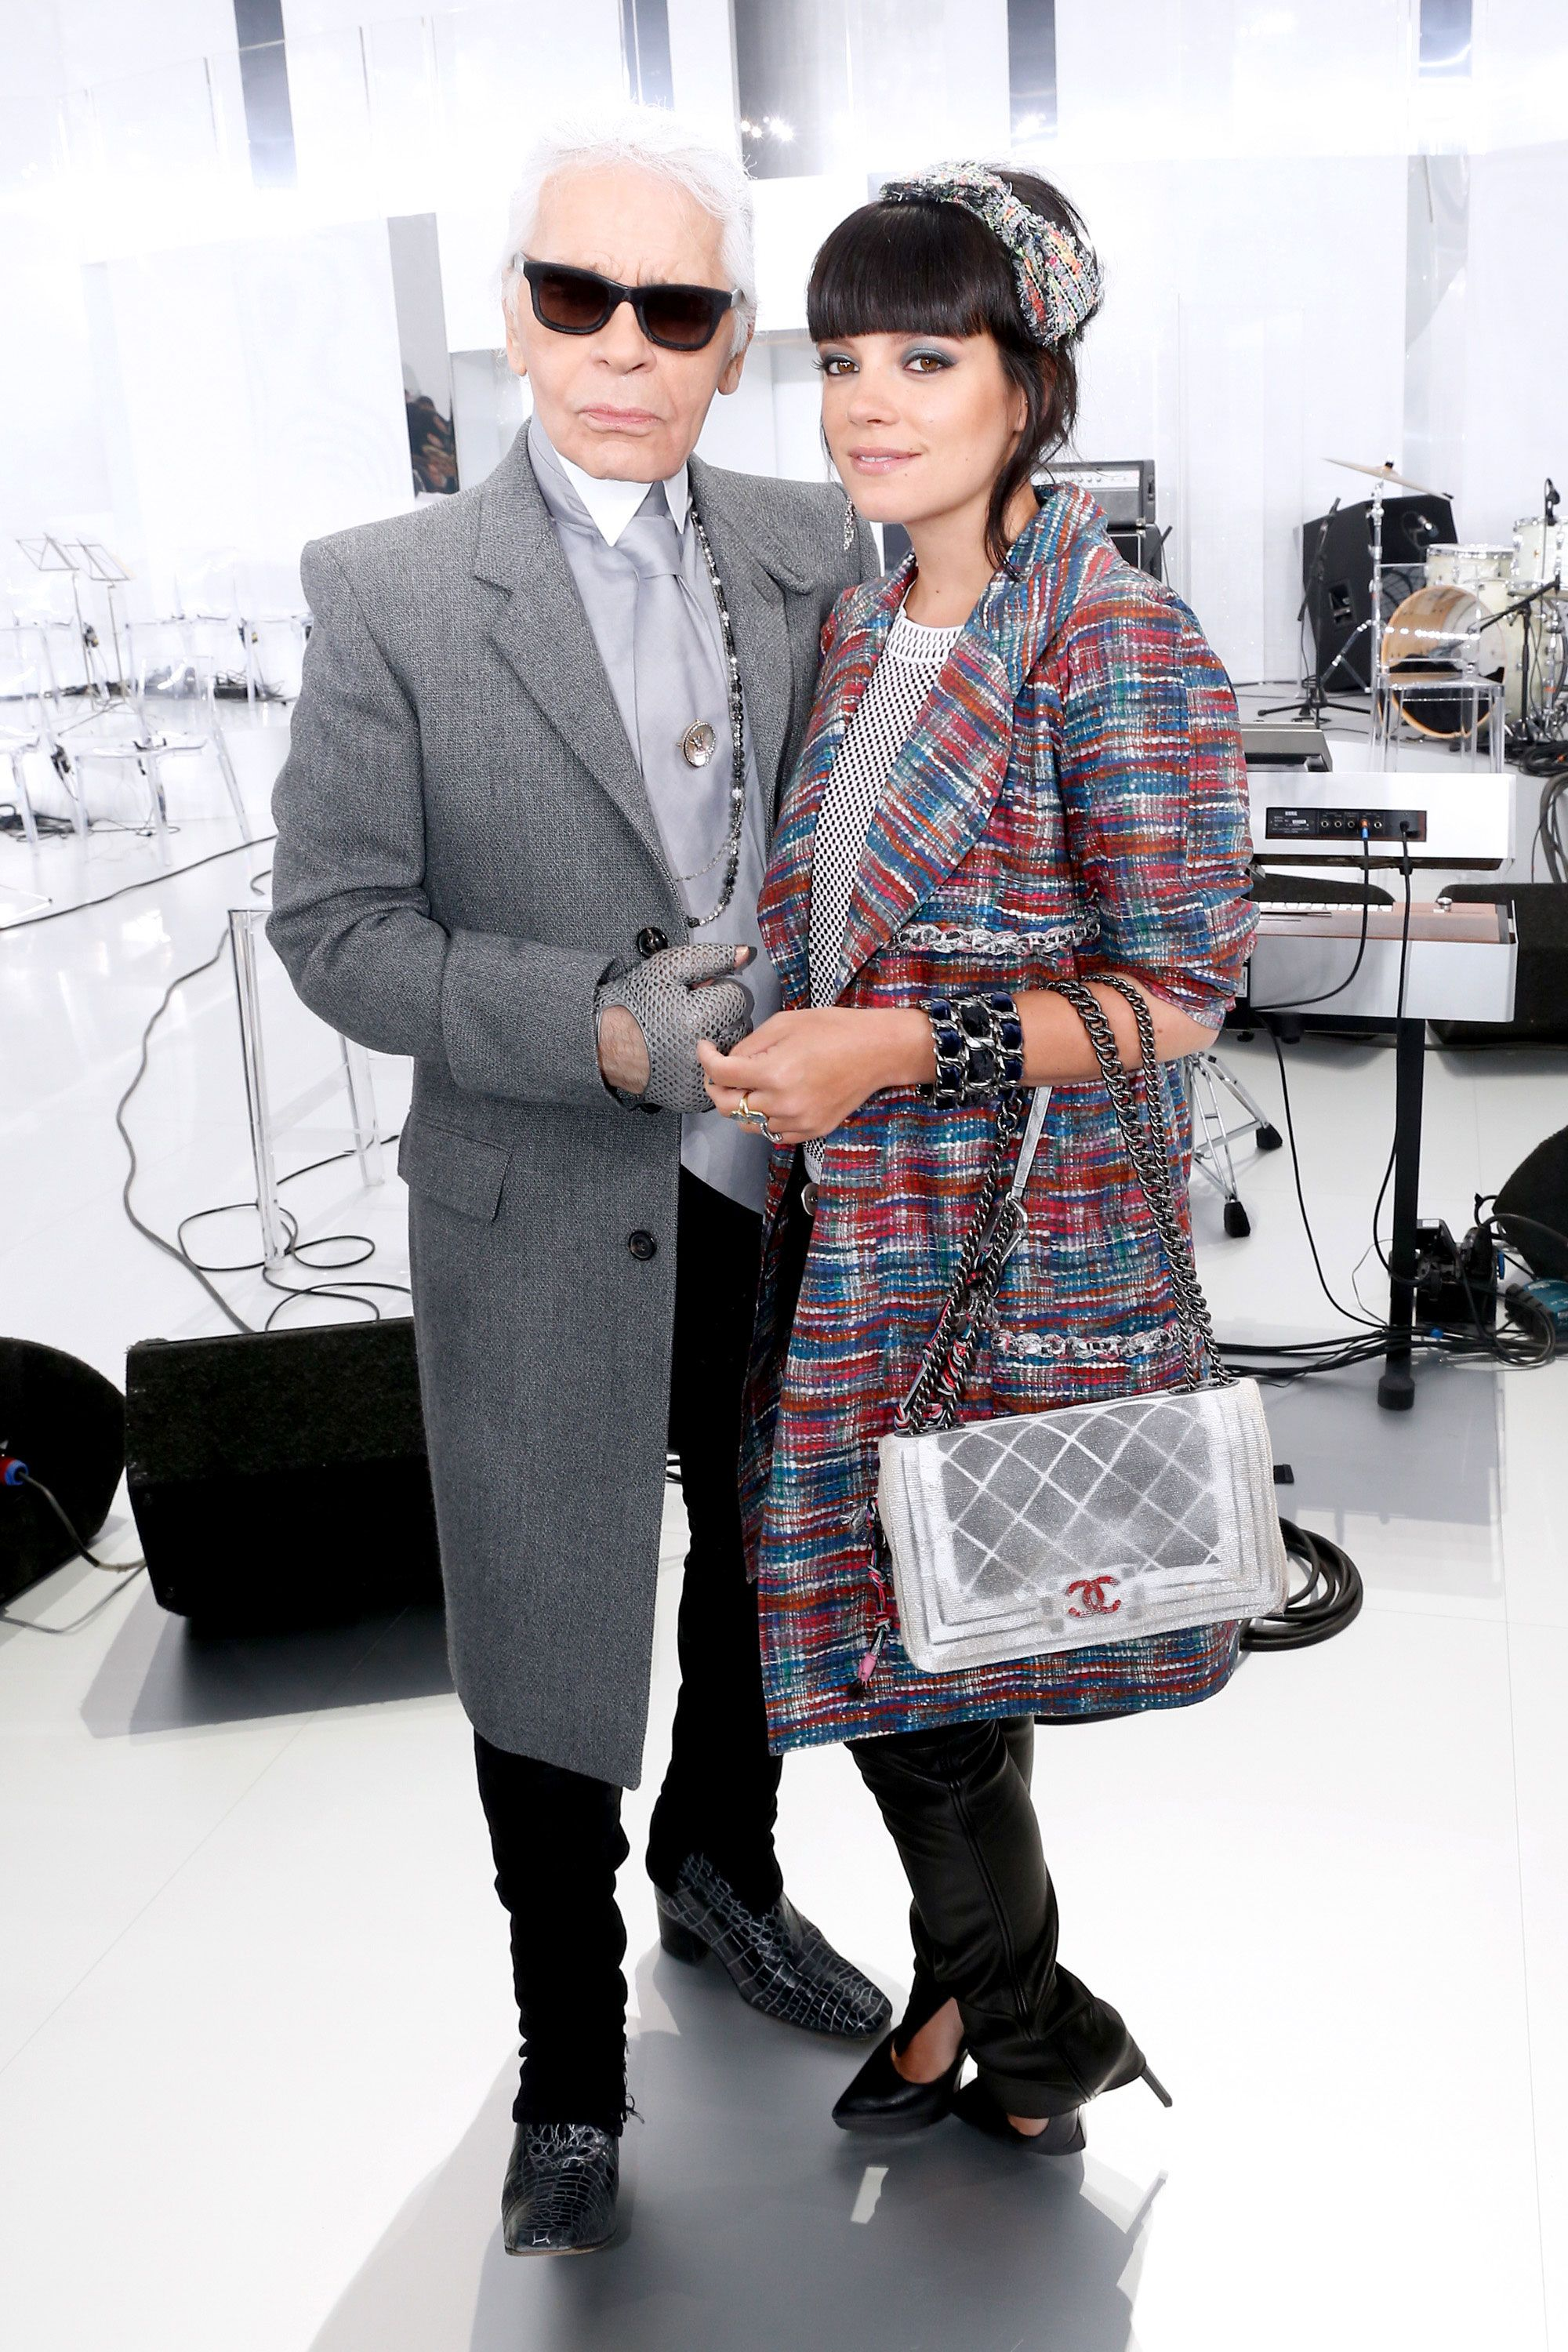 91c9f5f0a545 Lily Allen's Lost Chanel Couture Wedding Gown - Fashion News